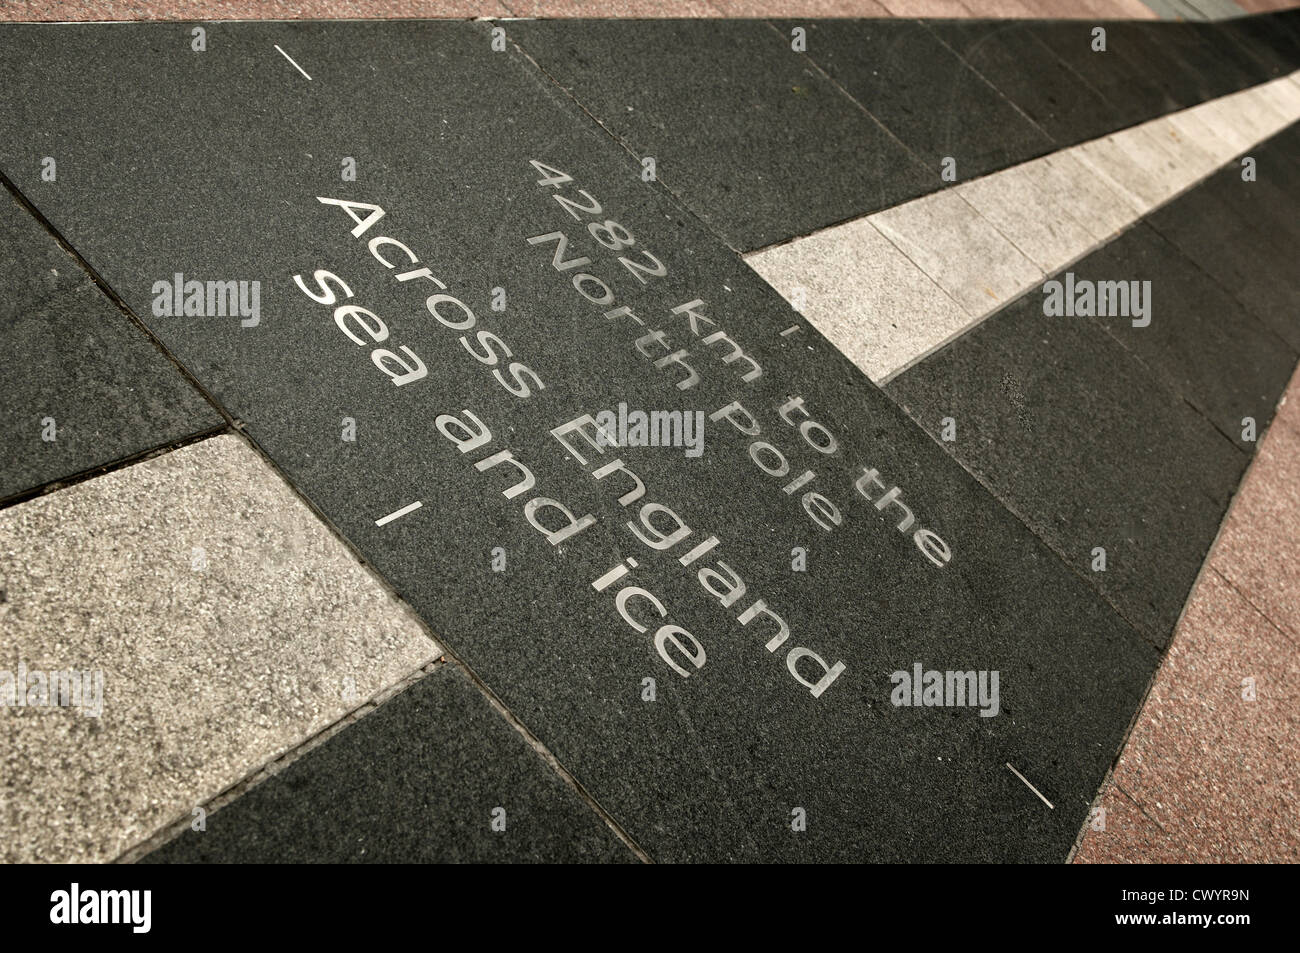 Directional paving stone, London, England, Great Britain, Europe - Stock Image